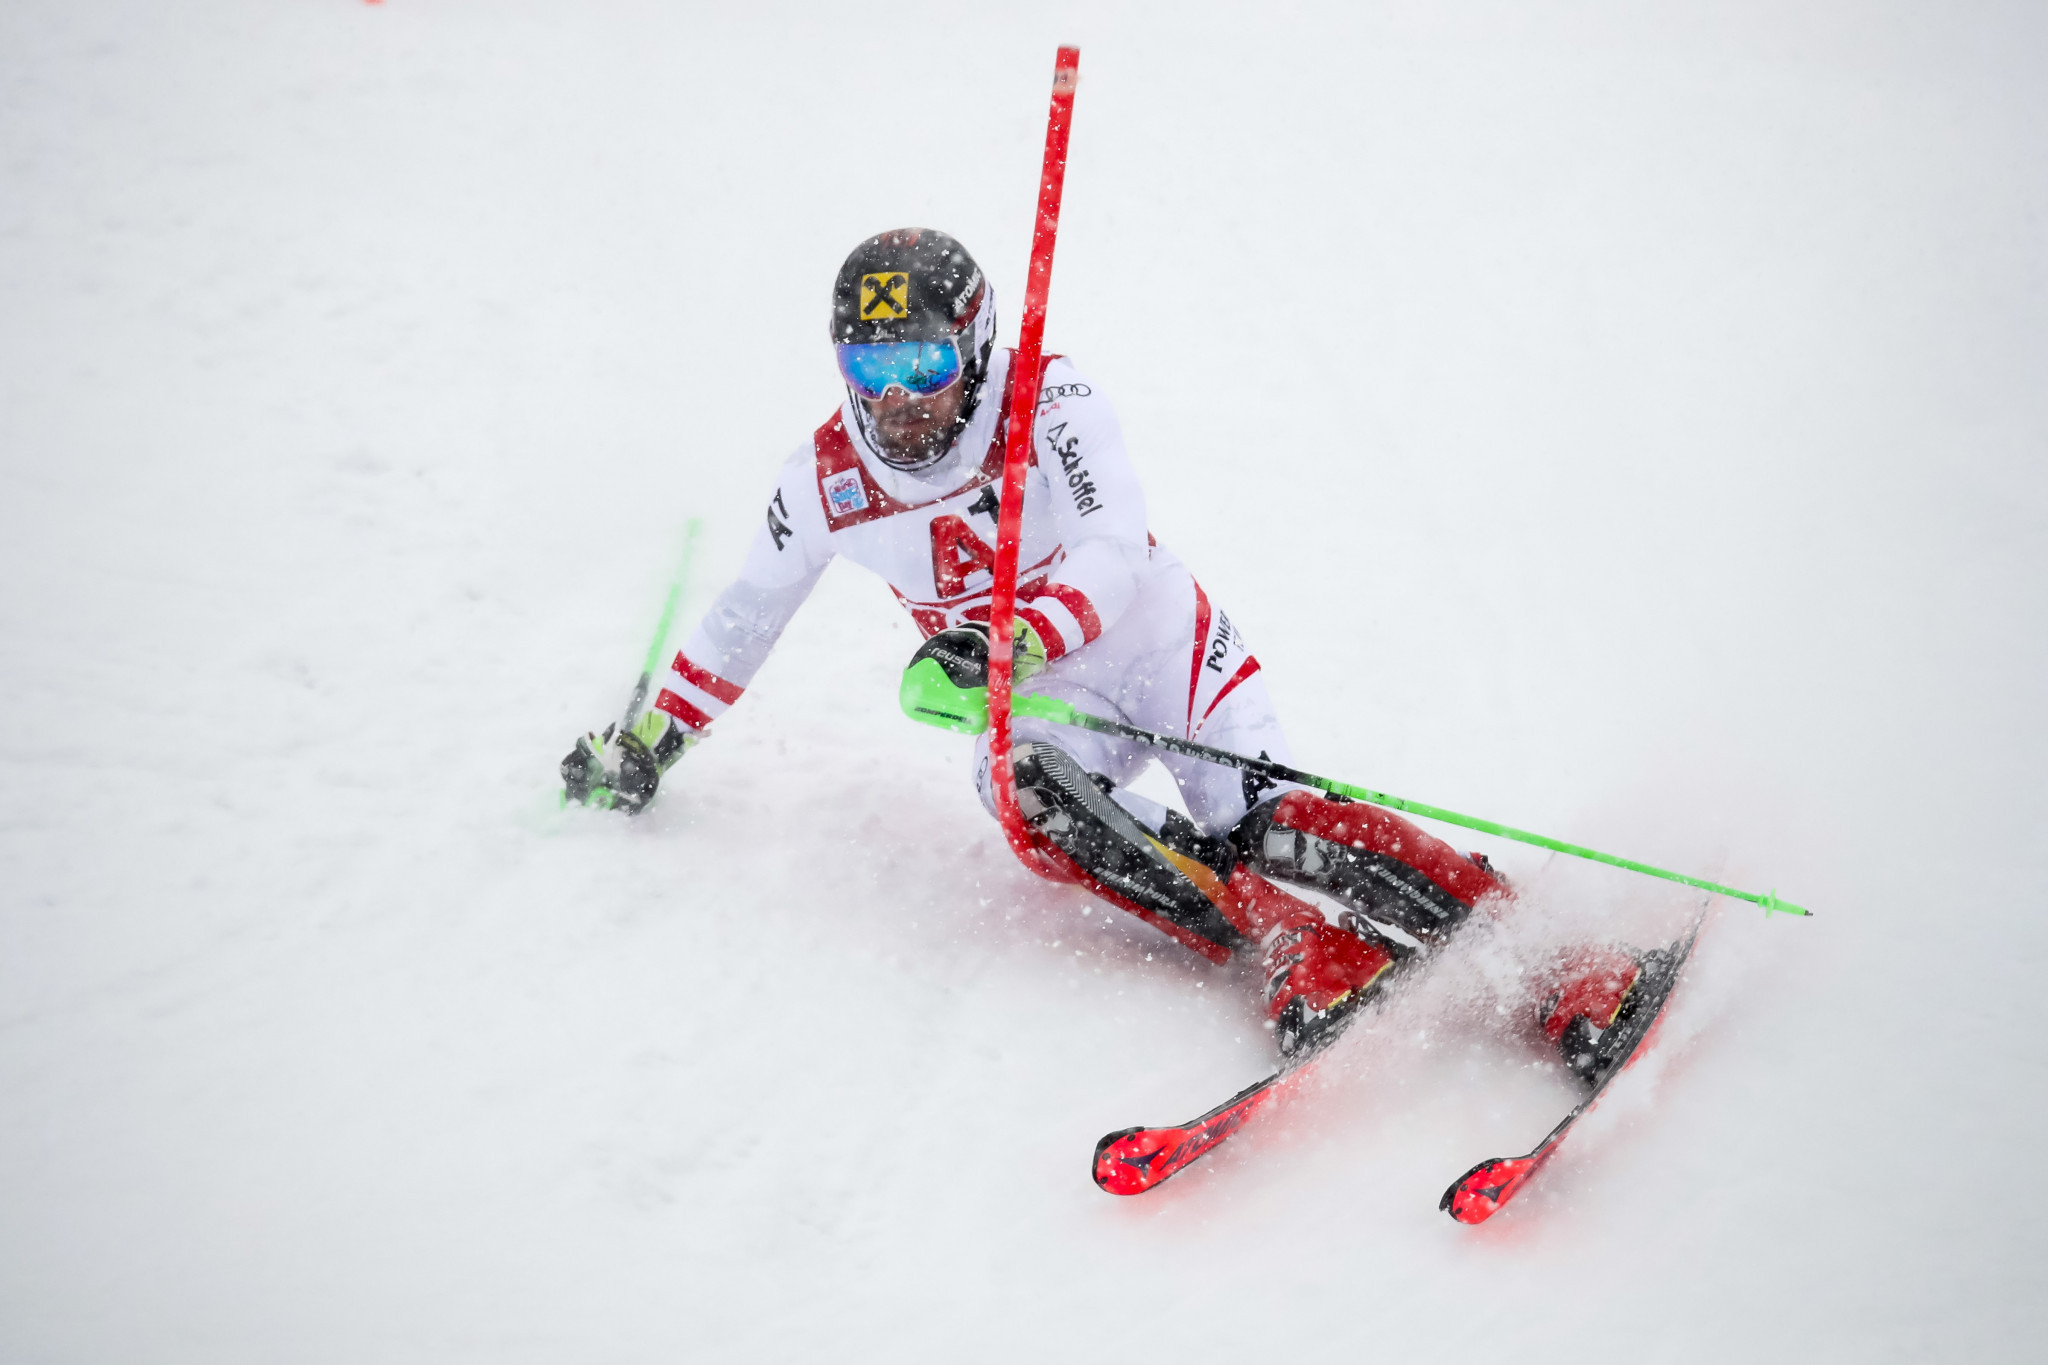 Marcel Hirscher will be a big draw on home snow in Schladming ©Getty Images